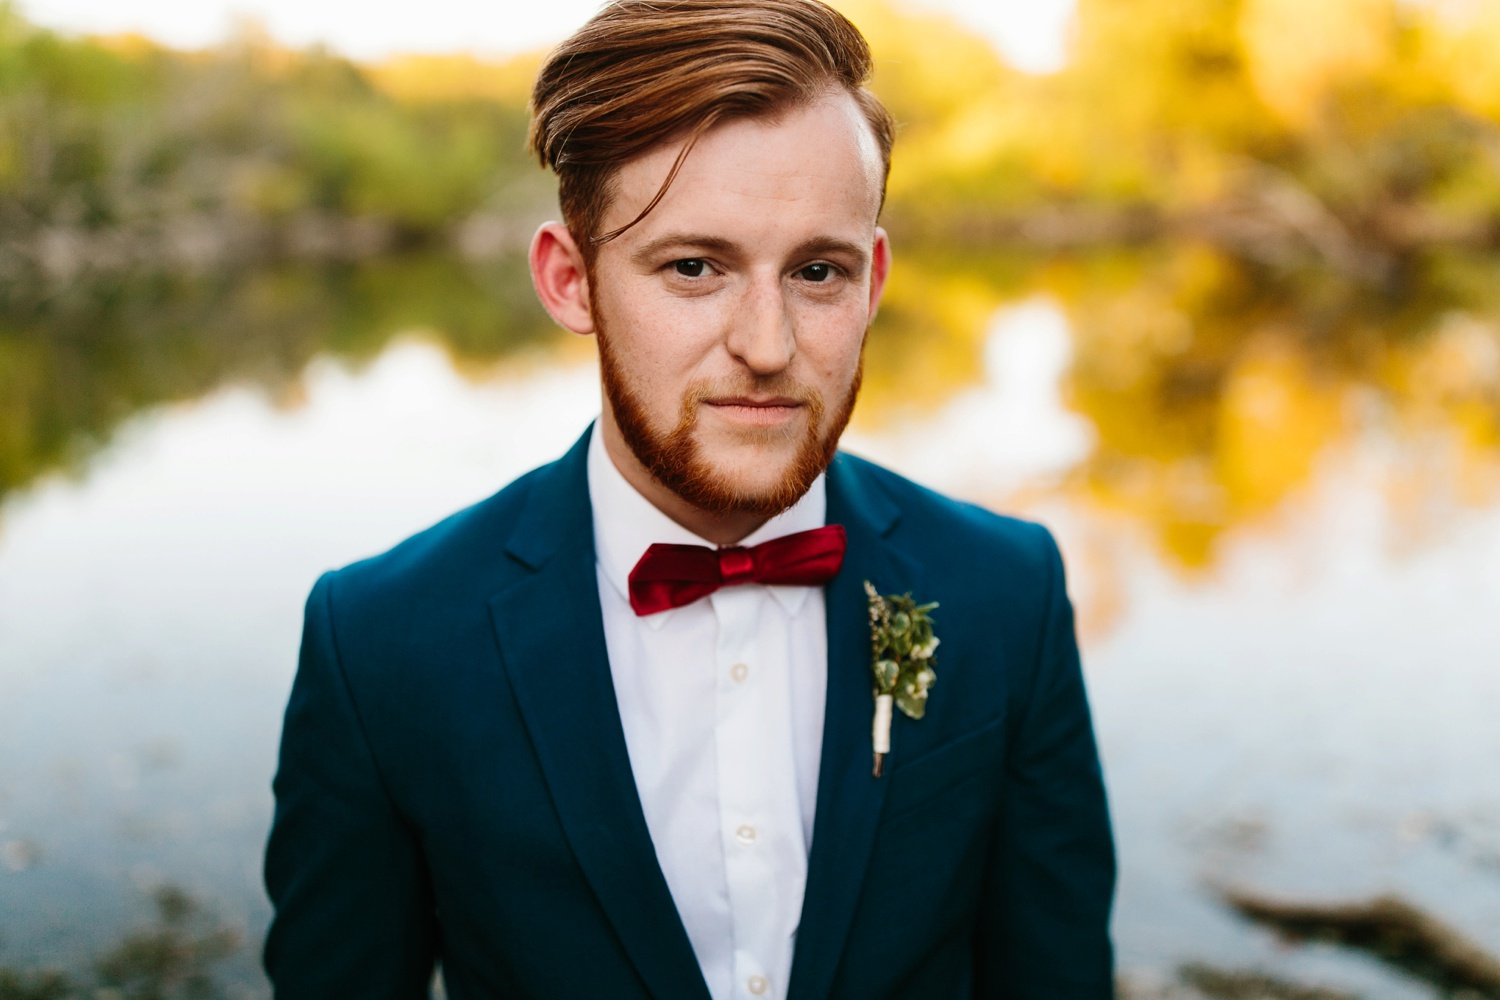 Grant + Lysette | a vibrant, deep burgundy and navy, and mixed metals wedding at Hidden Pines Chapel by North Texas Wedding Photographer Rachel Meagan Photography 238